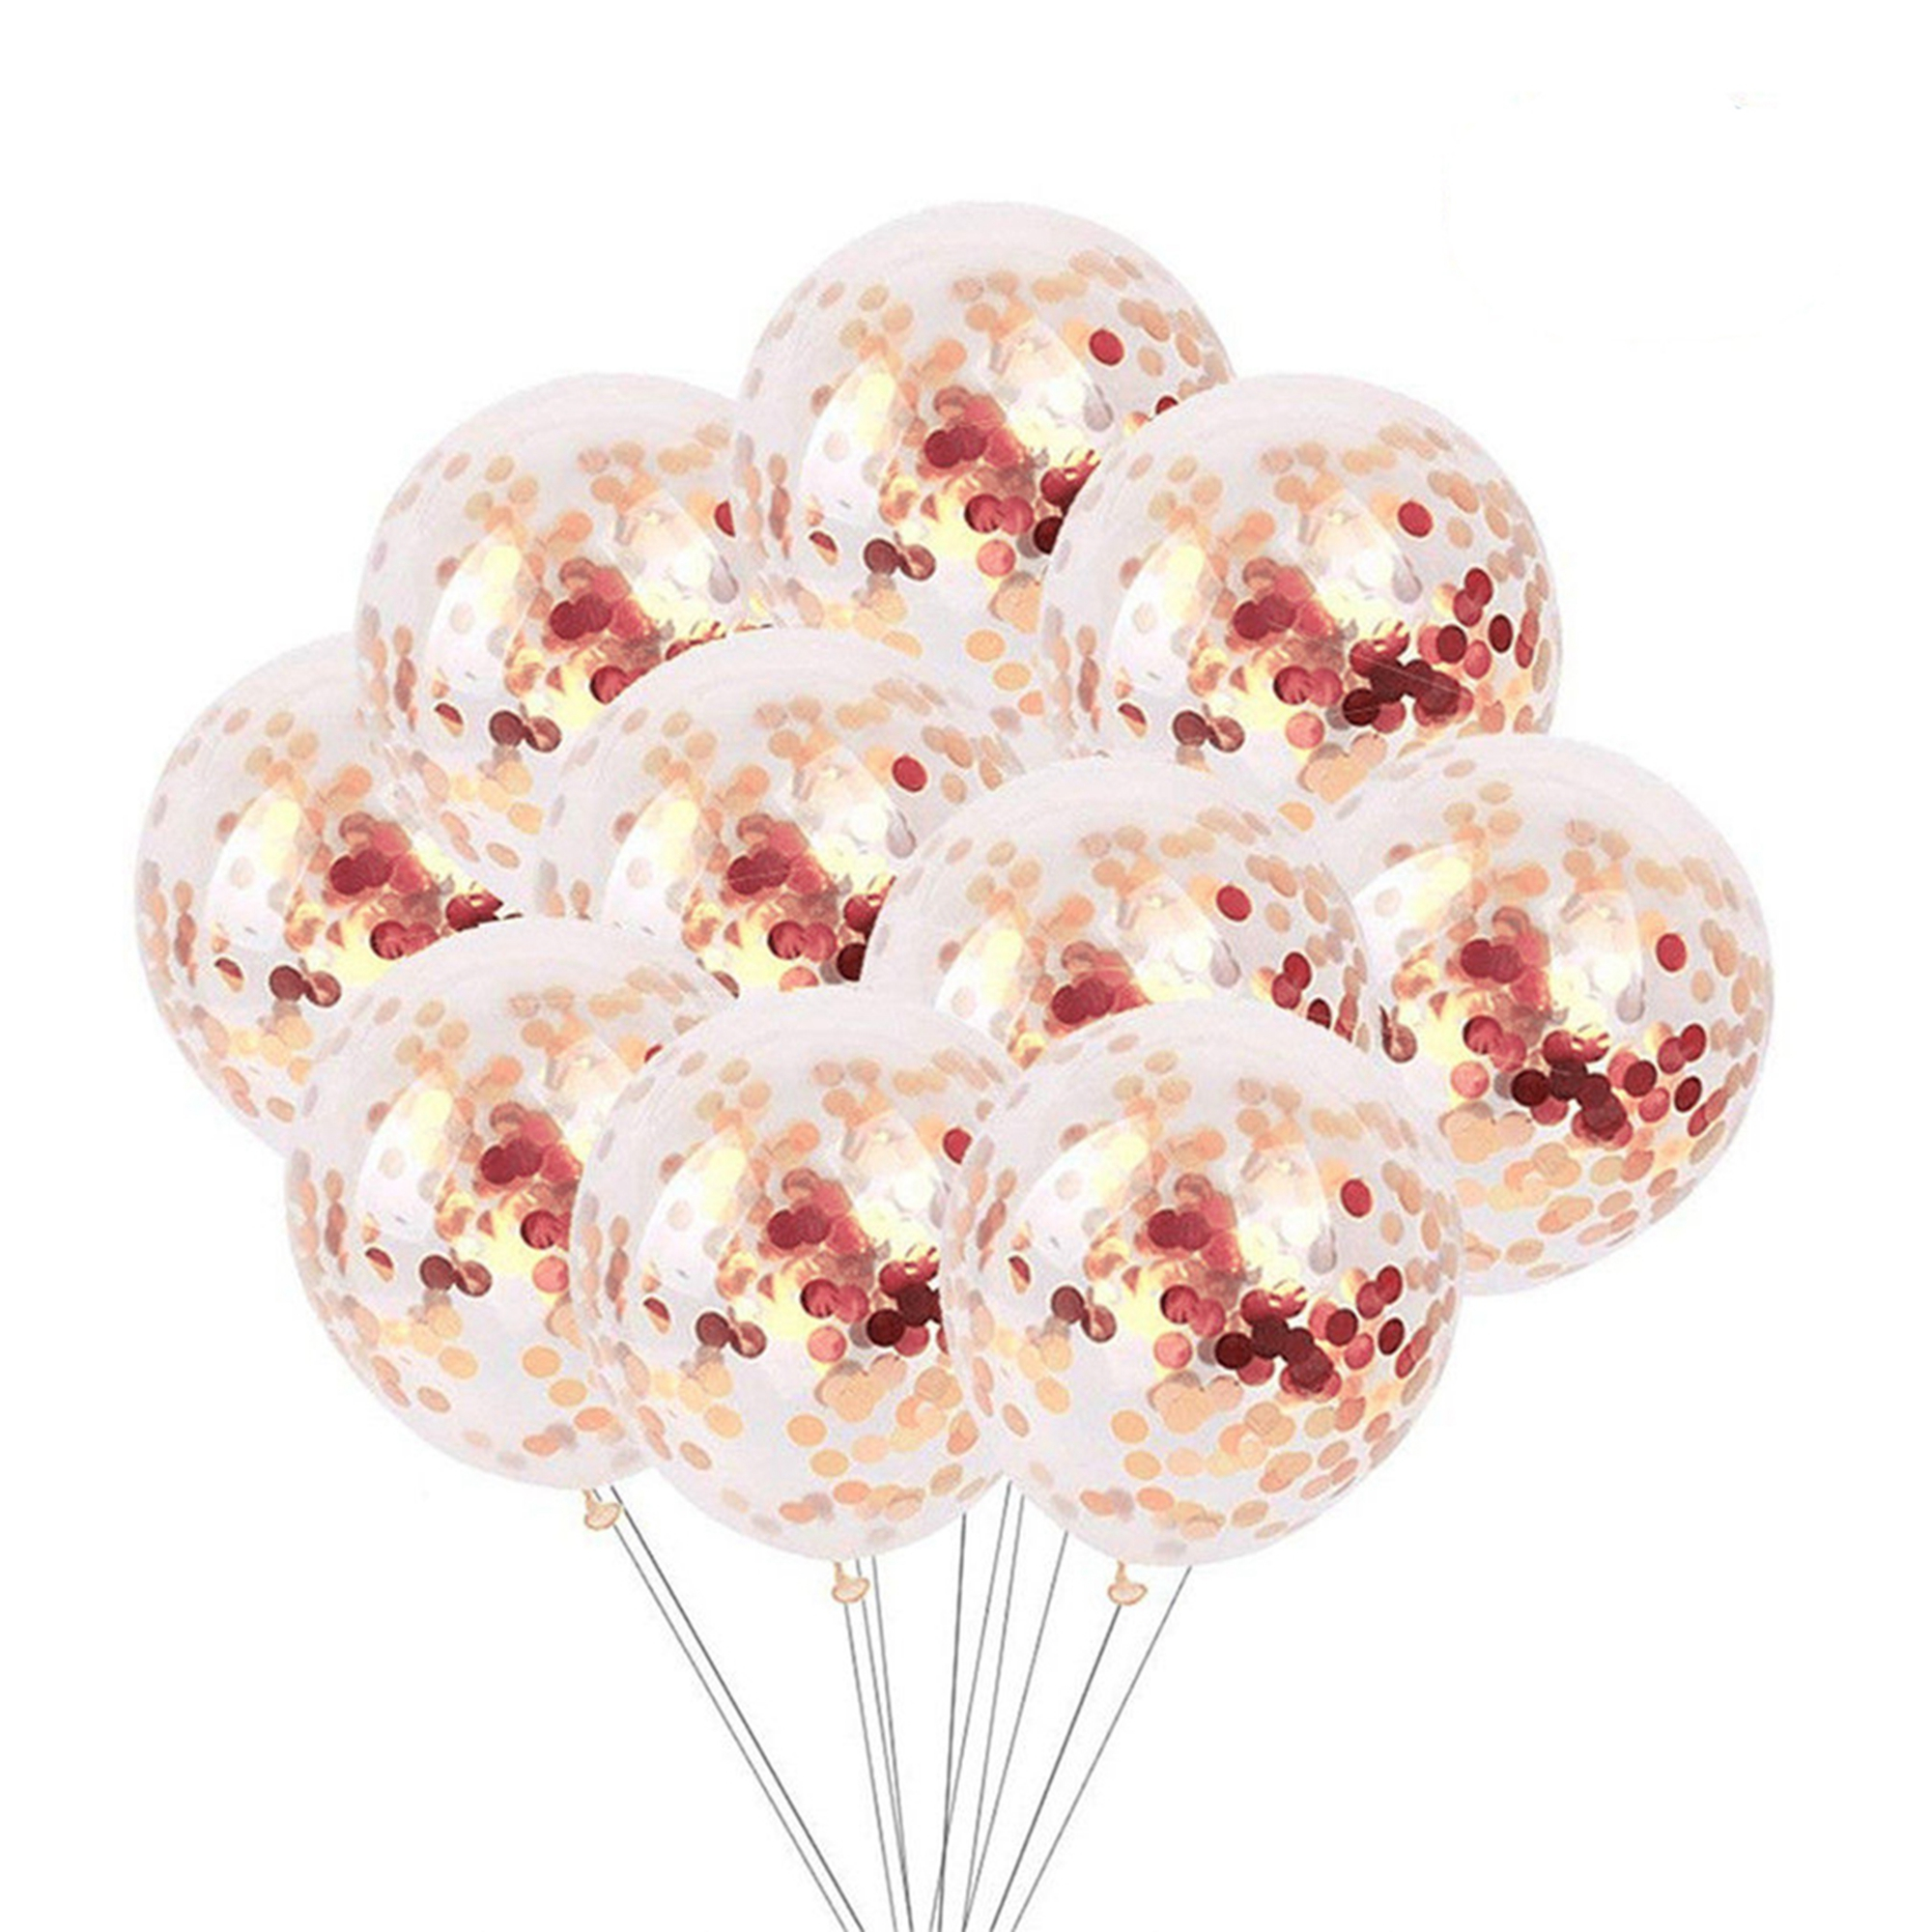 10pcs/lot Rose Gold Confetti Balloons 12 Inch Clear Latex Sequin Balloon Wedding 1st Birthday Party Baby Shower Decoration Kids Fun Toys